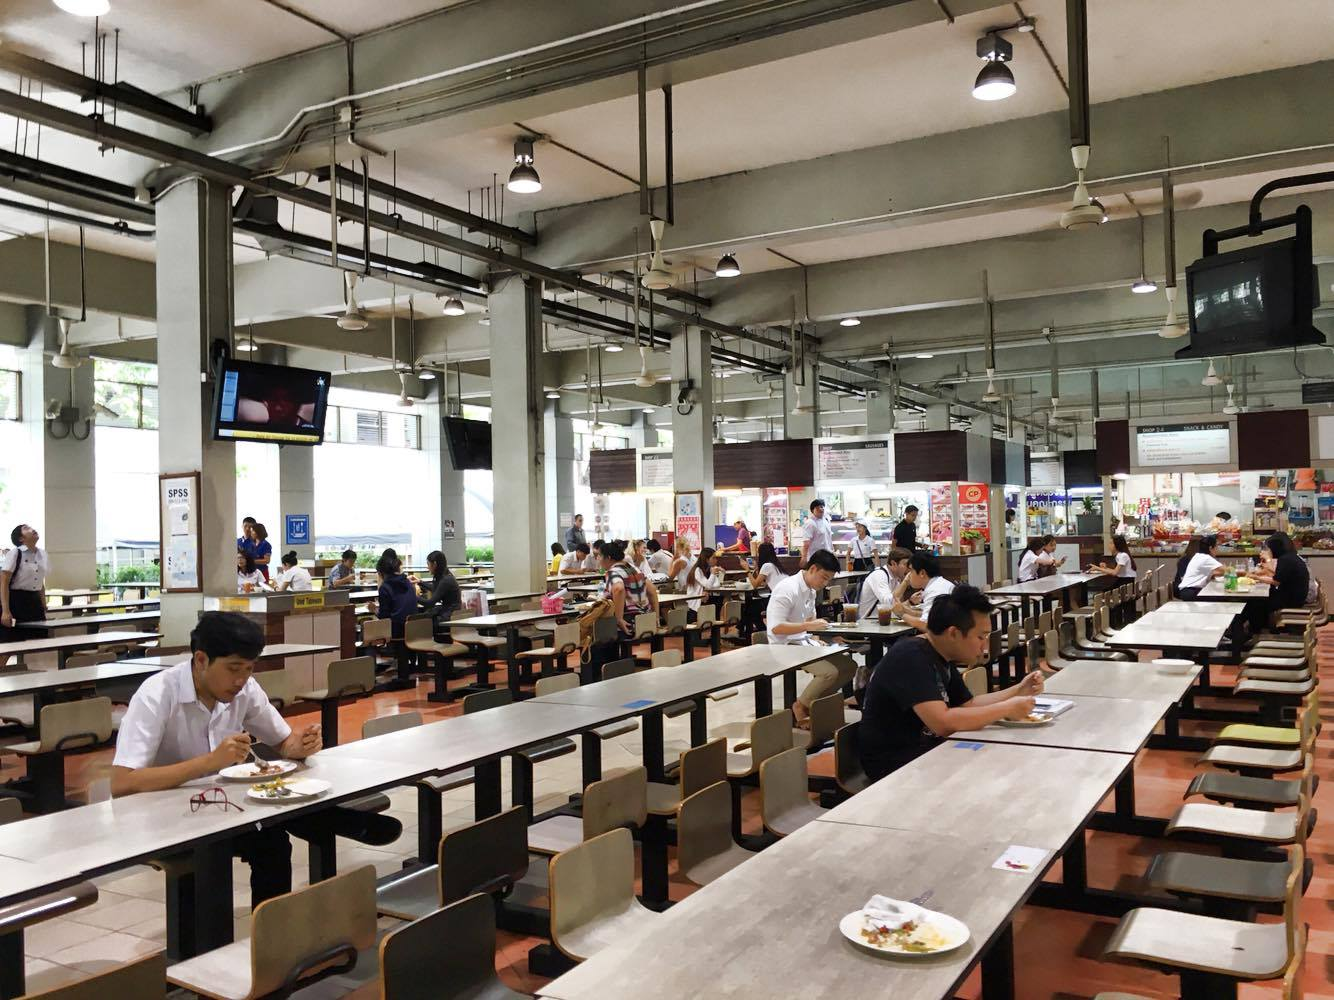 Bangkok university food court